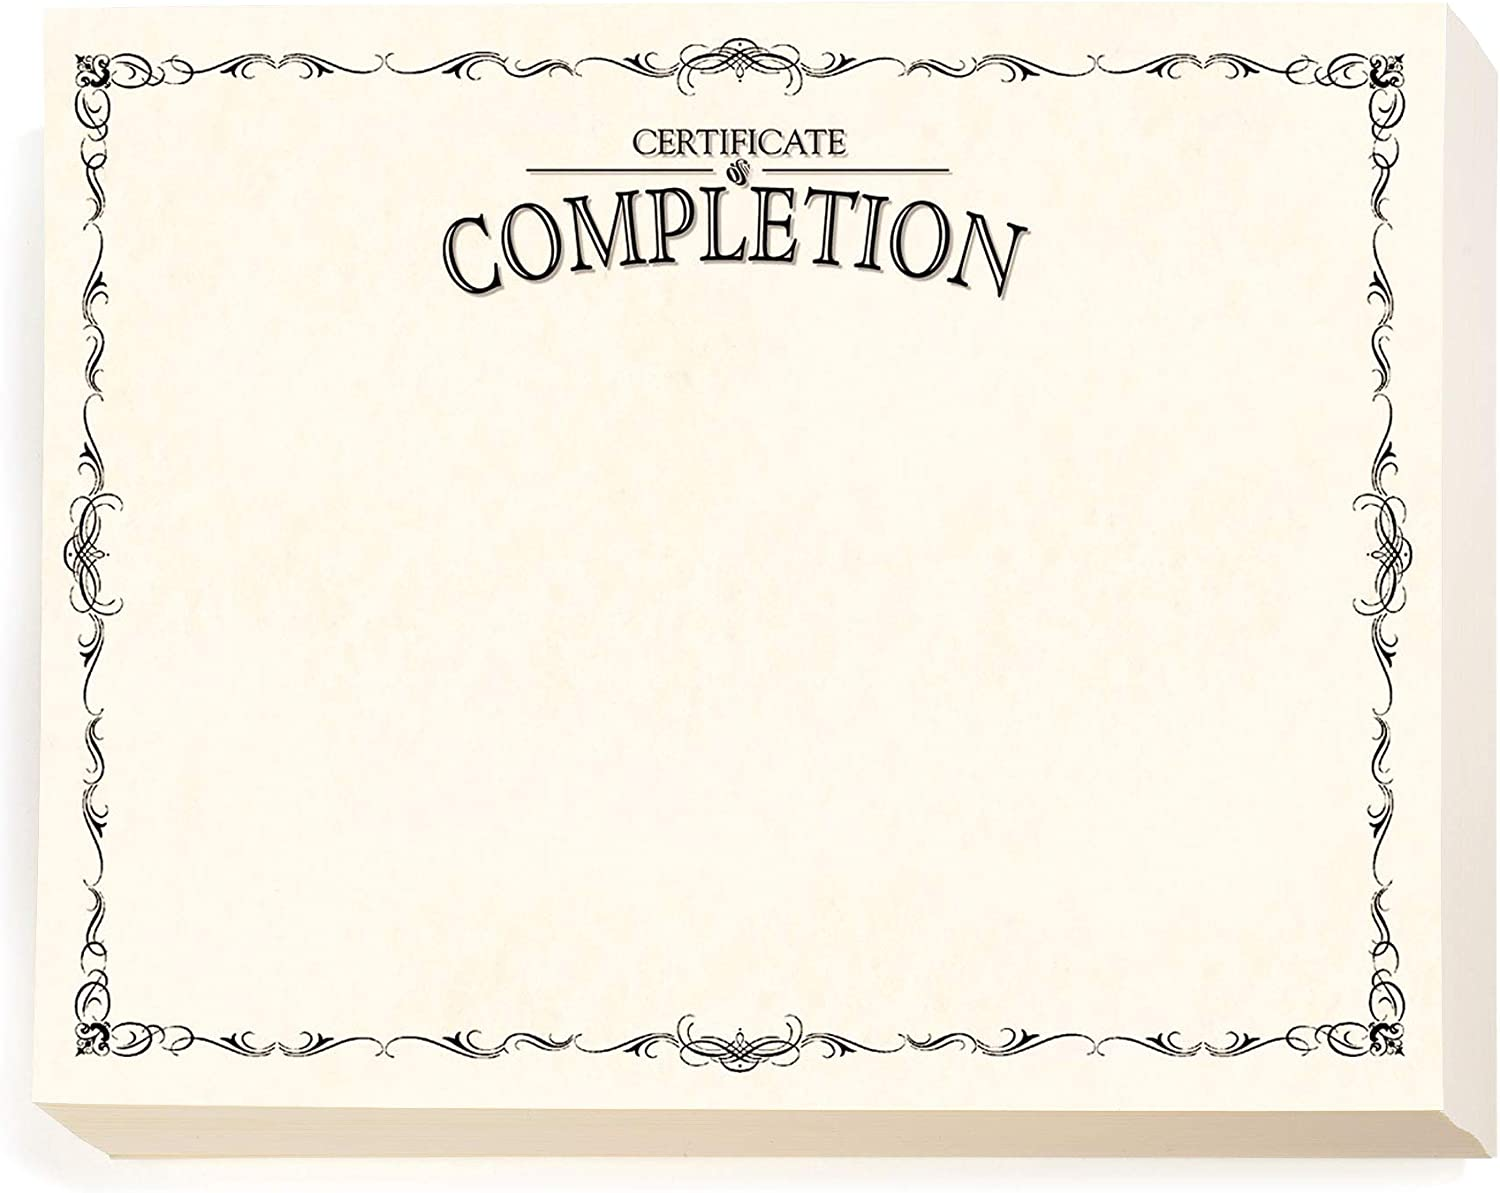 PaperDirect Certificate of High material Completion Finally resale start Delicate Border 8 Black